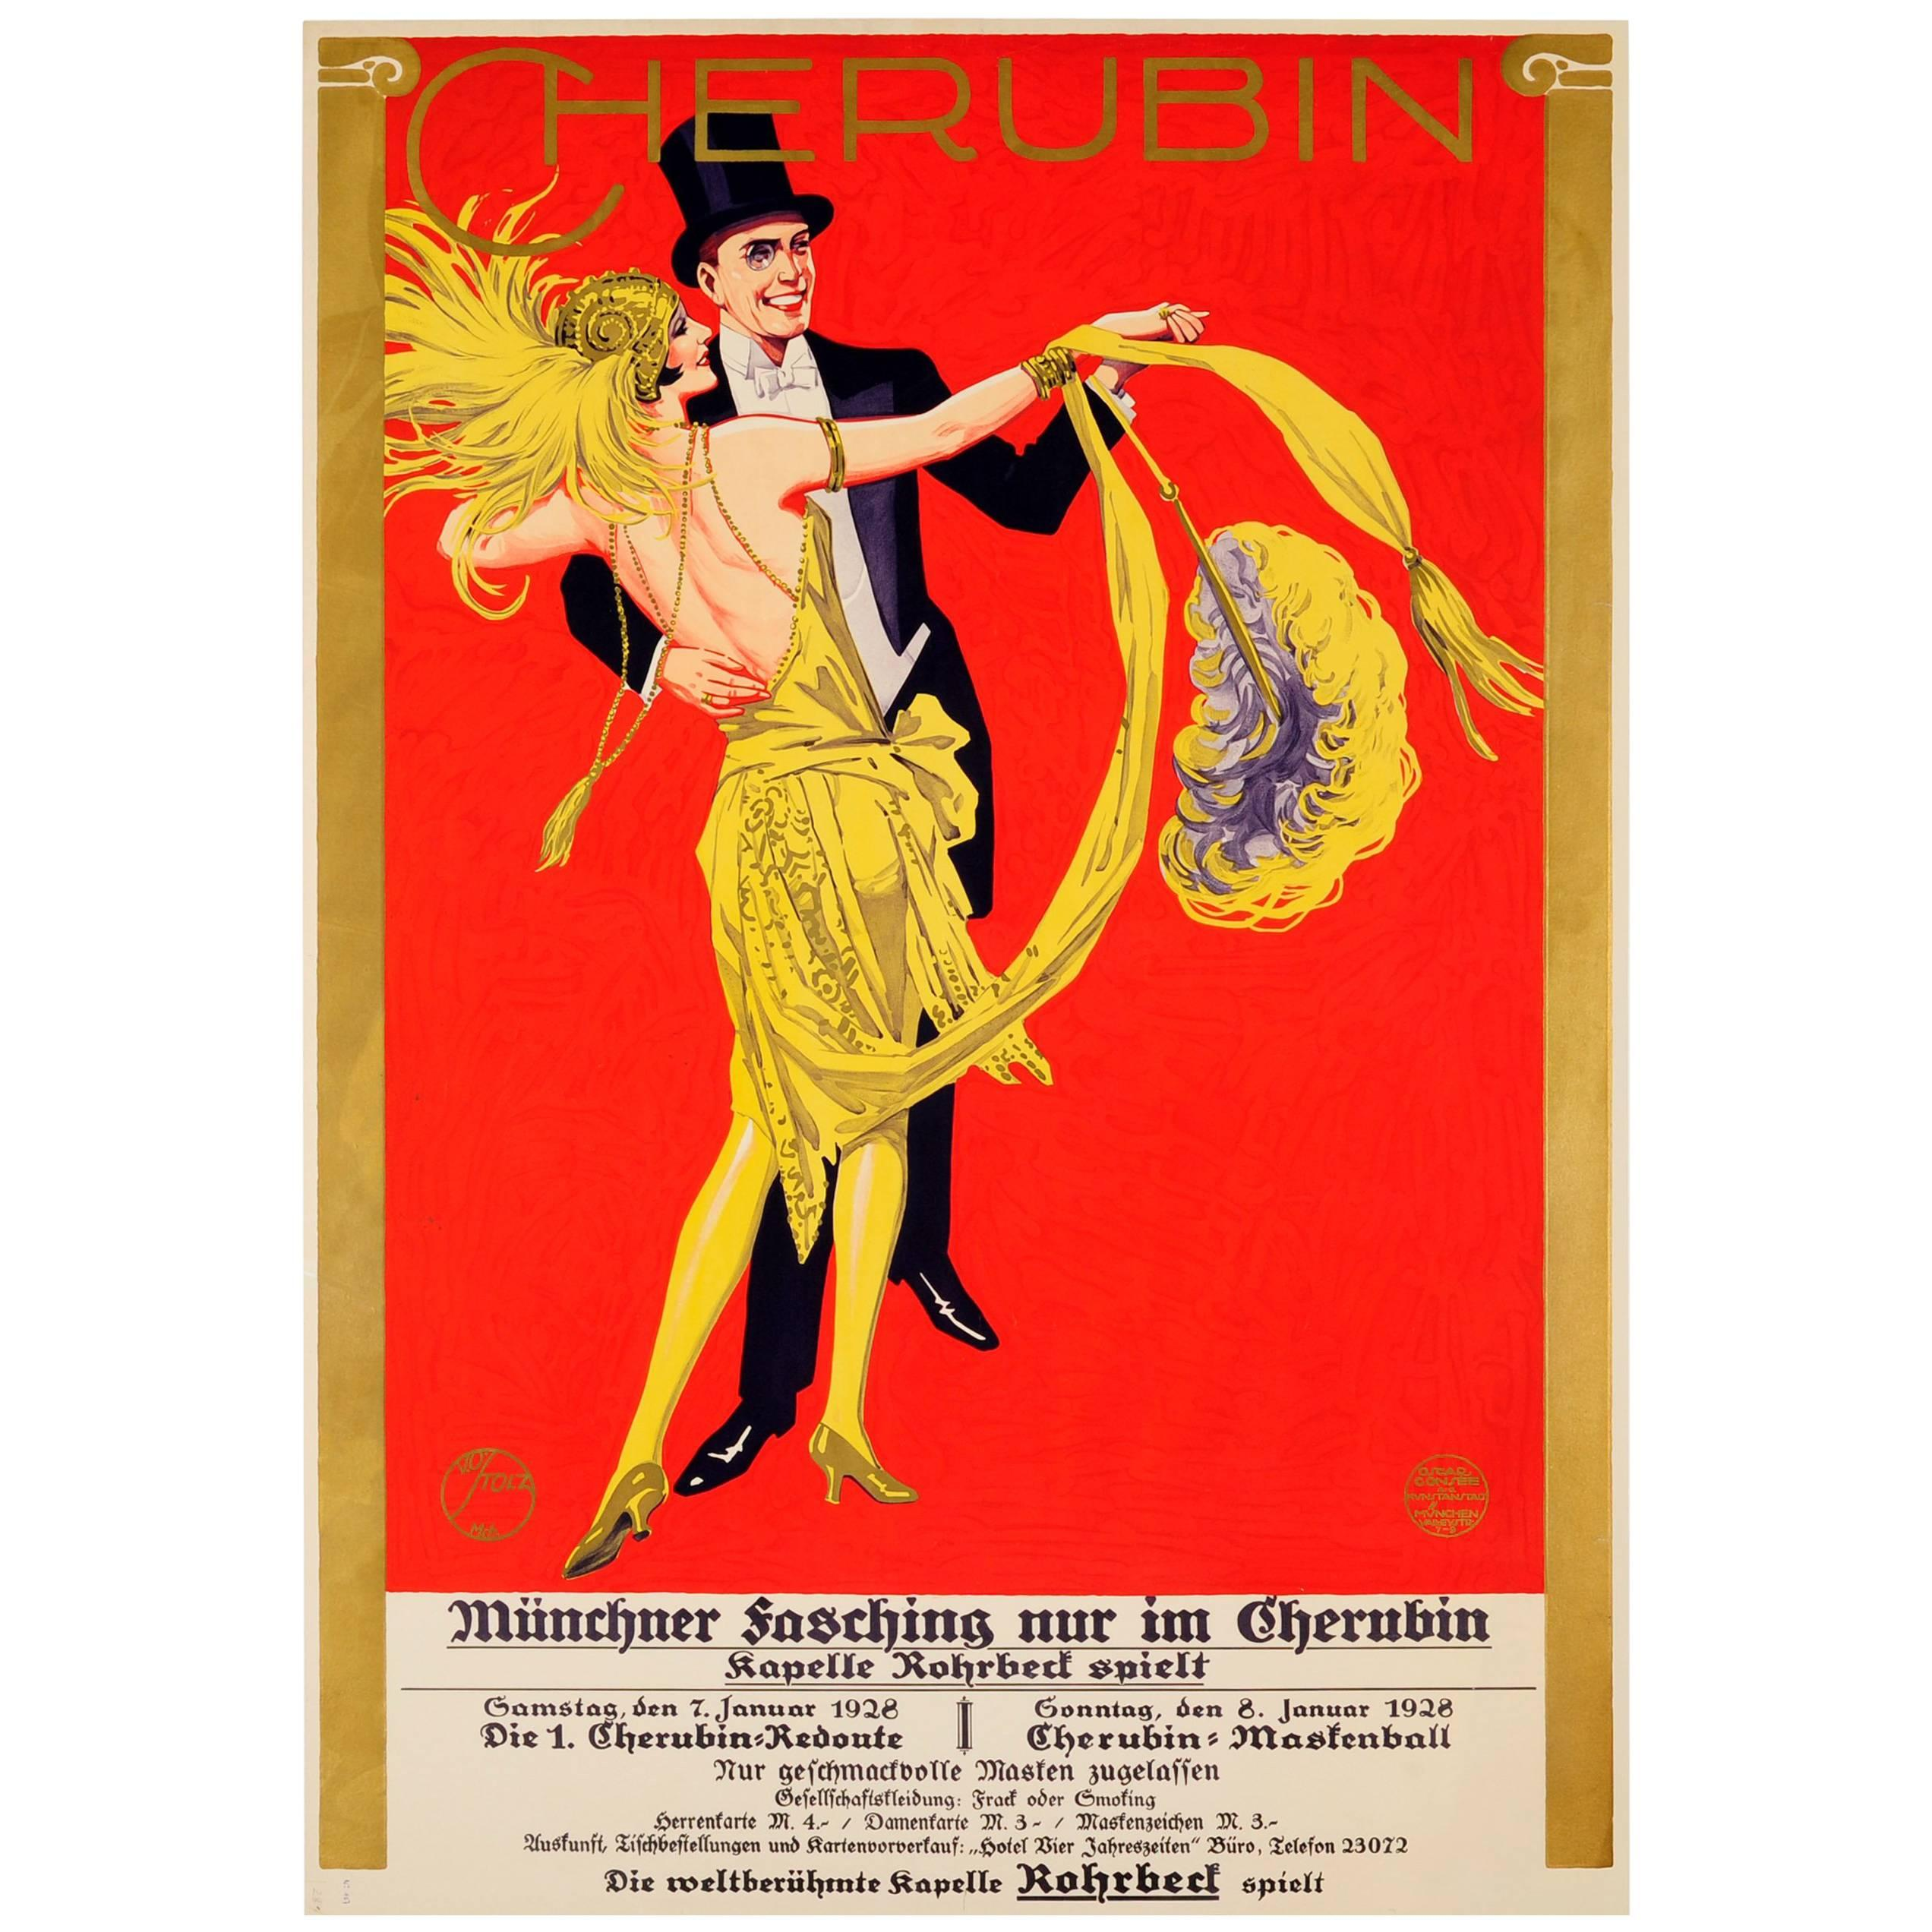 Original Vintage Dance Poster for the Munich Fasching Carnival at the Cherubin